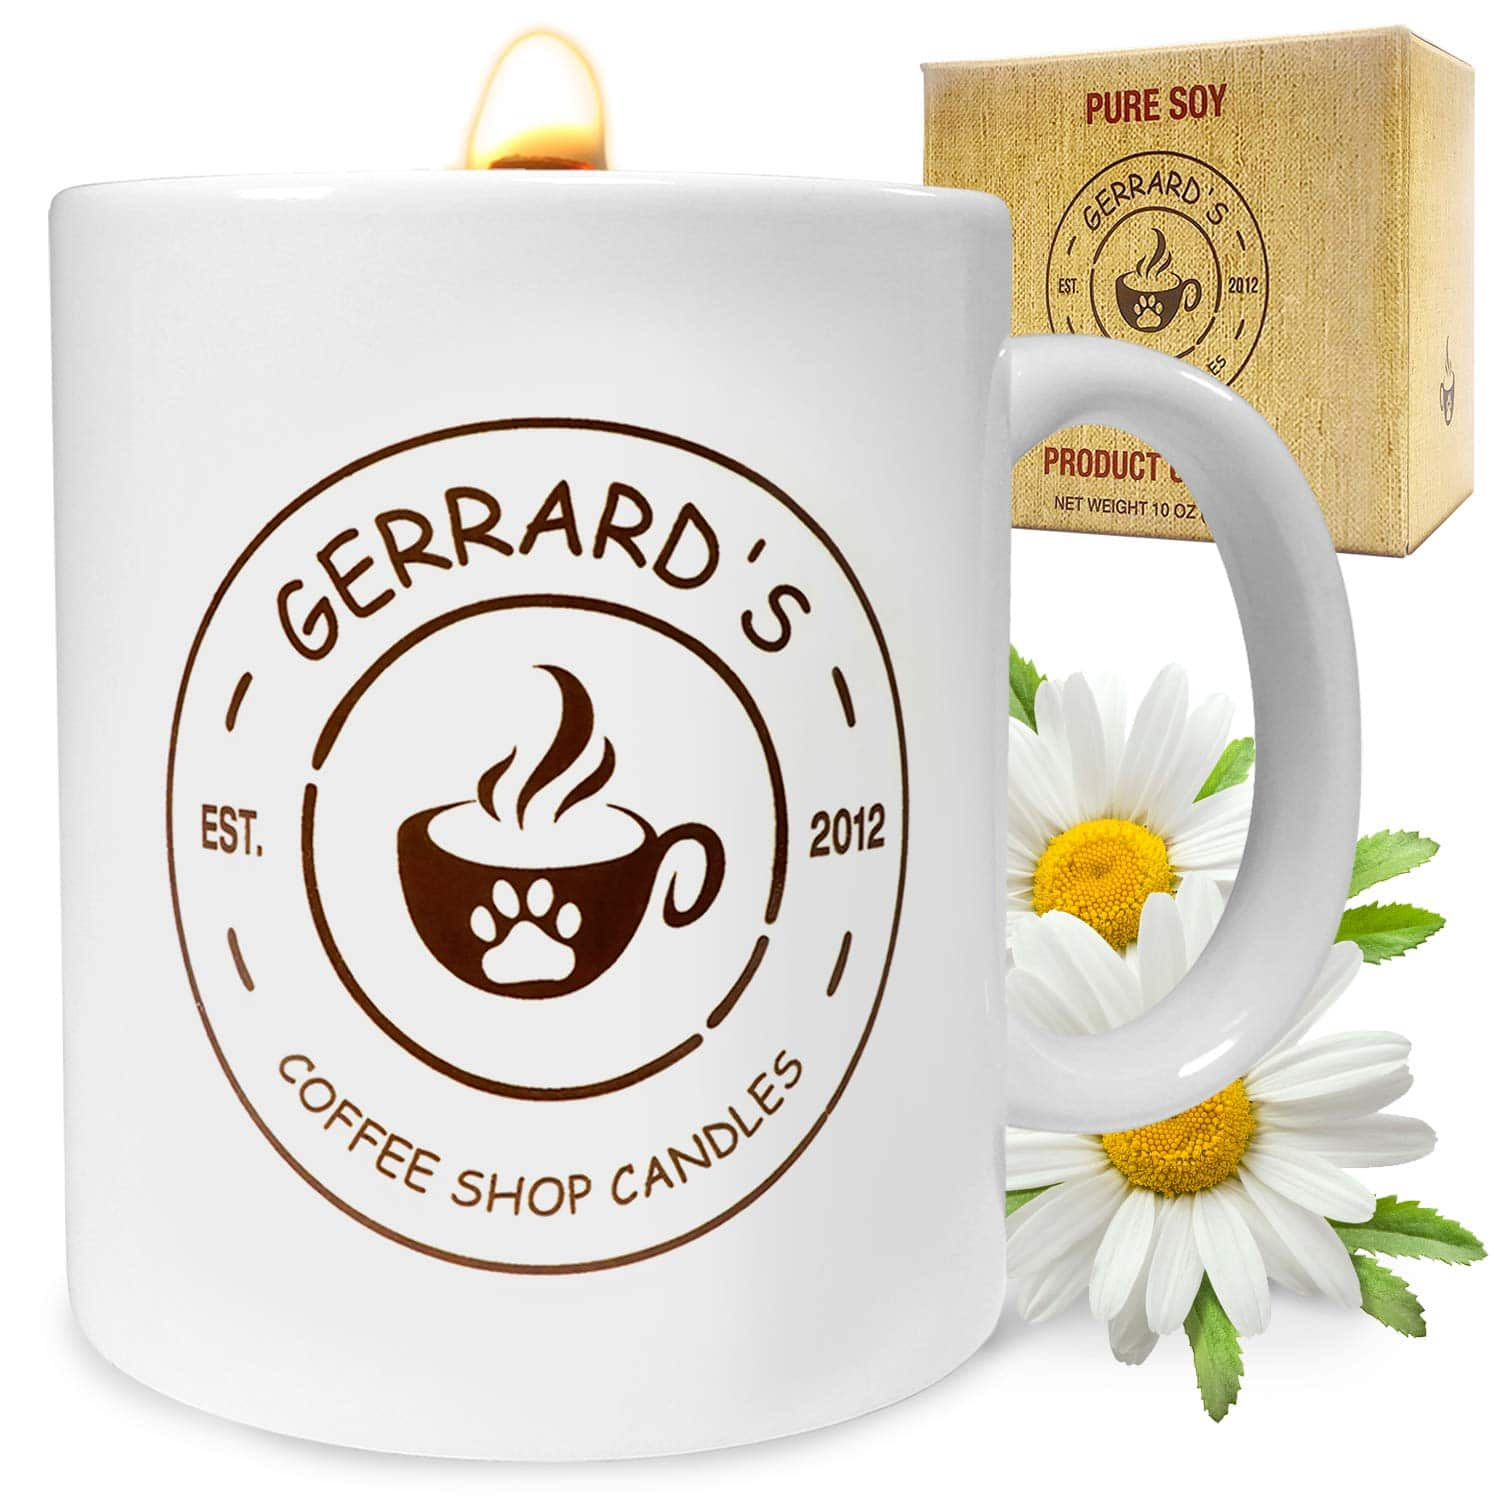 Coffee Shop Aroma at Home: Coffee, Cocoa, and Tea Nerds say their homes smell like their favorite coffee shops; The smooth burn of our Gerrard Larriett crackling candle fills multiple rooms with warm comforting aromas (even high ceiling and upper level rooms) turning even the most difficult days happy again